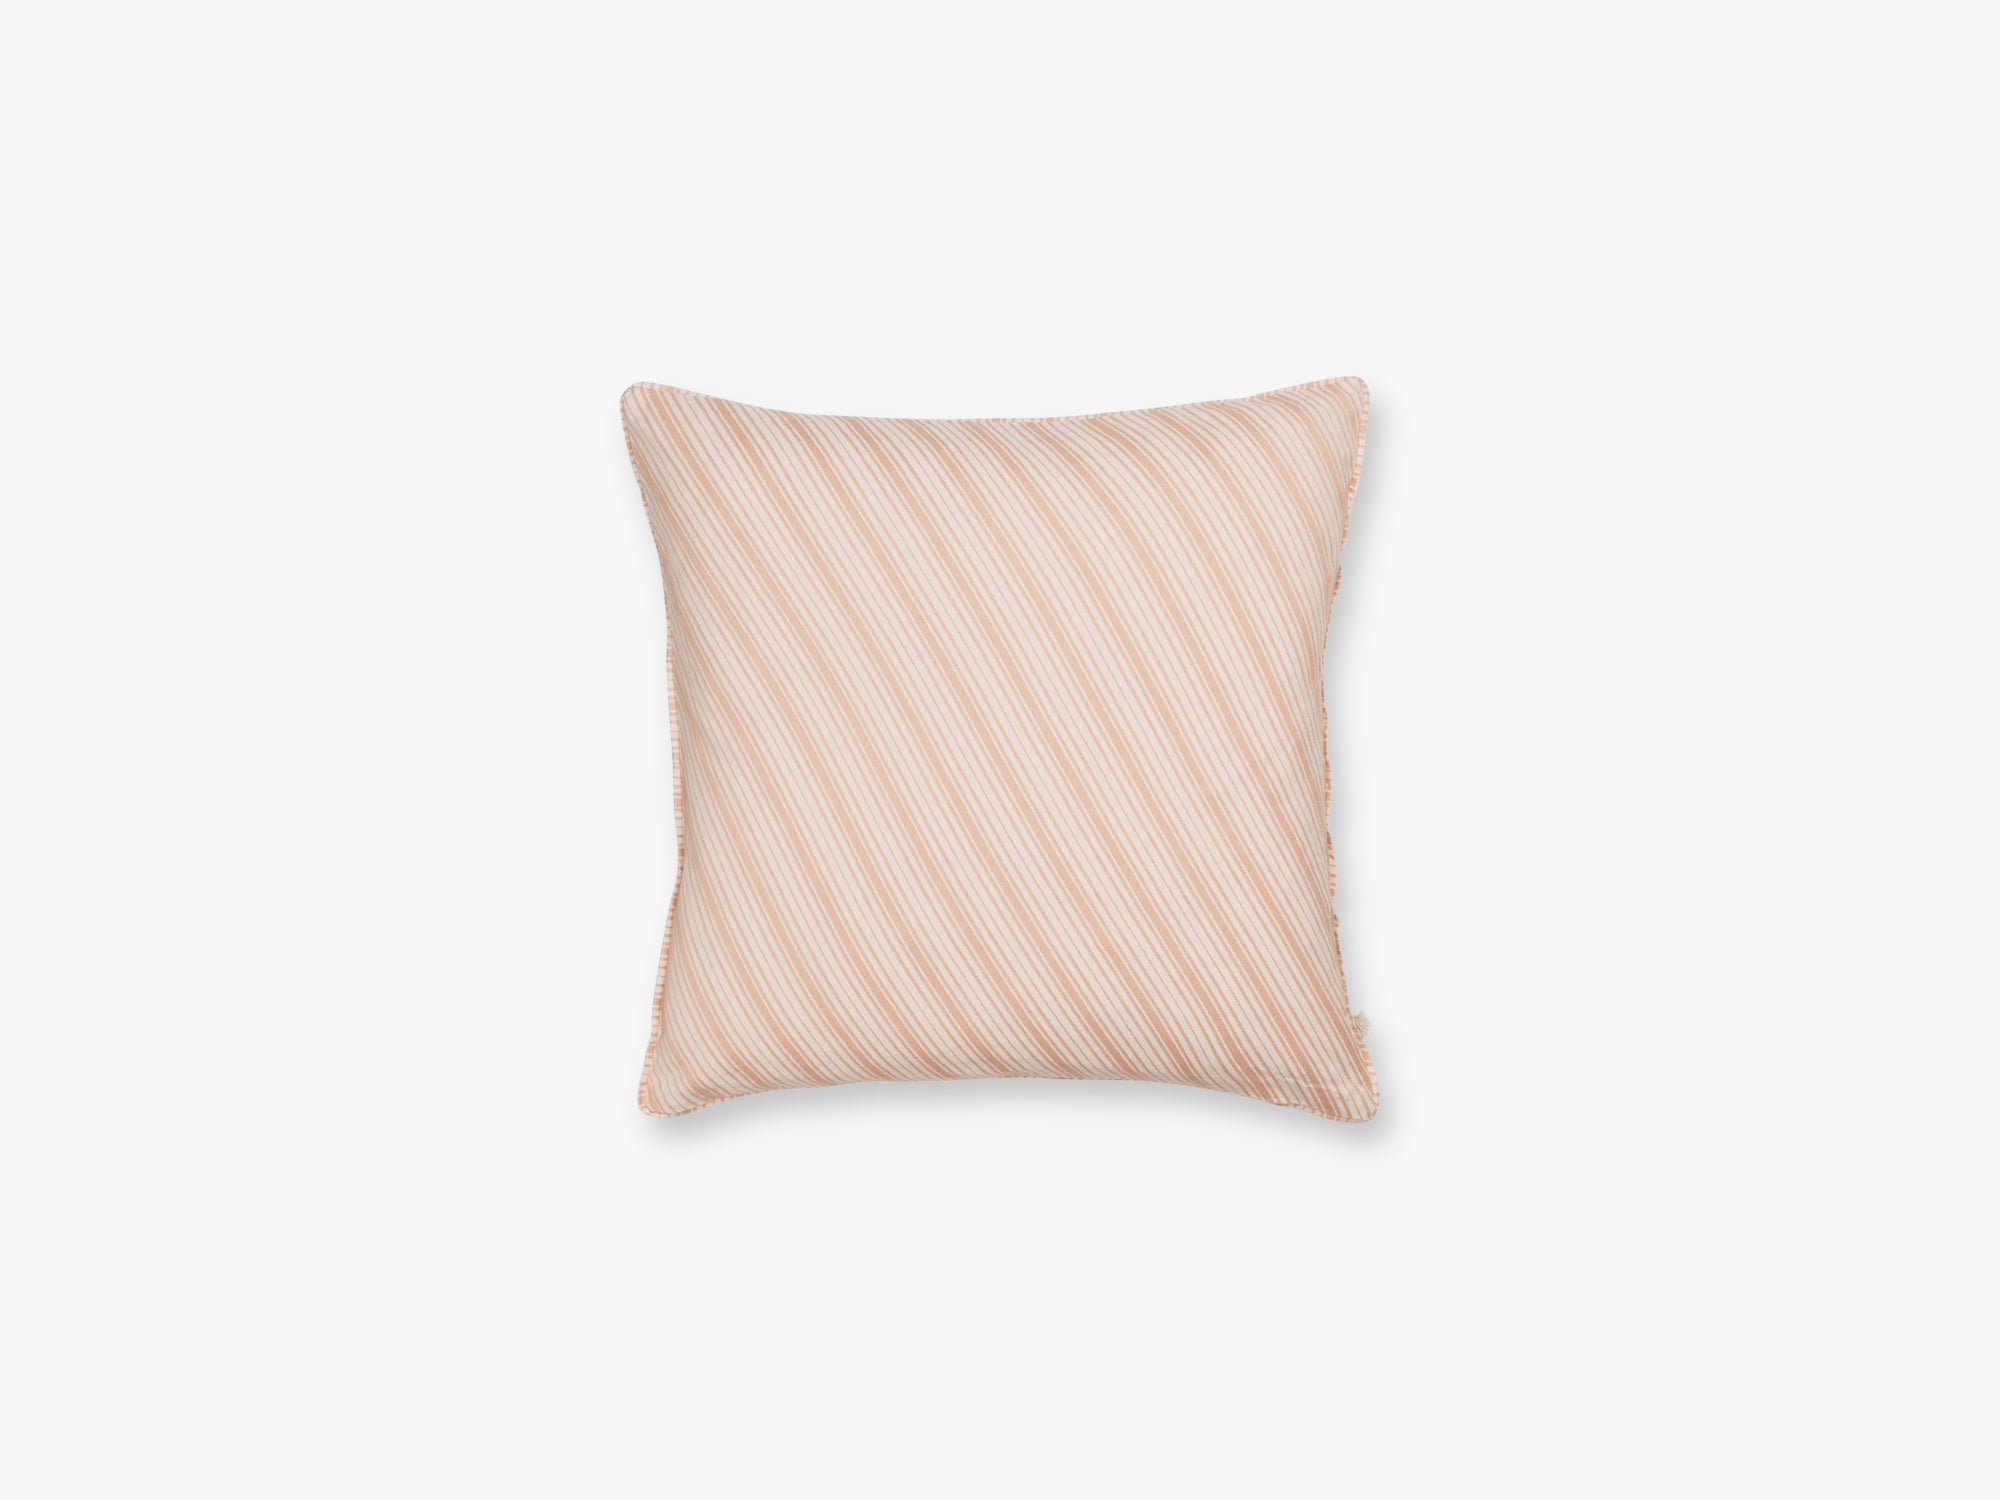 Pillow Dobby Striped 50x50, mix cameo fra Aiayu